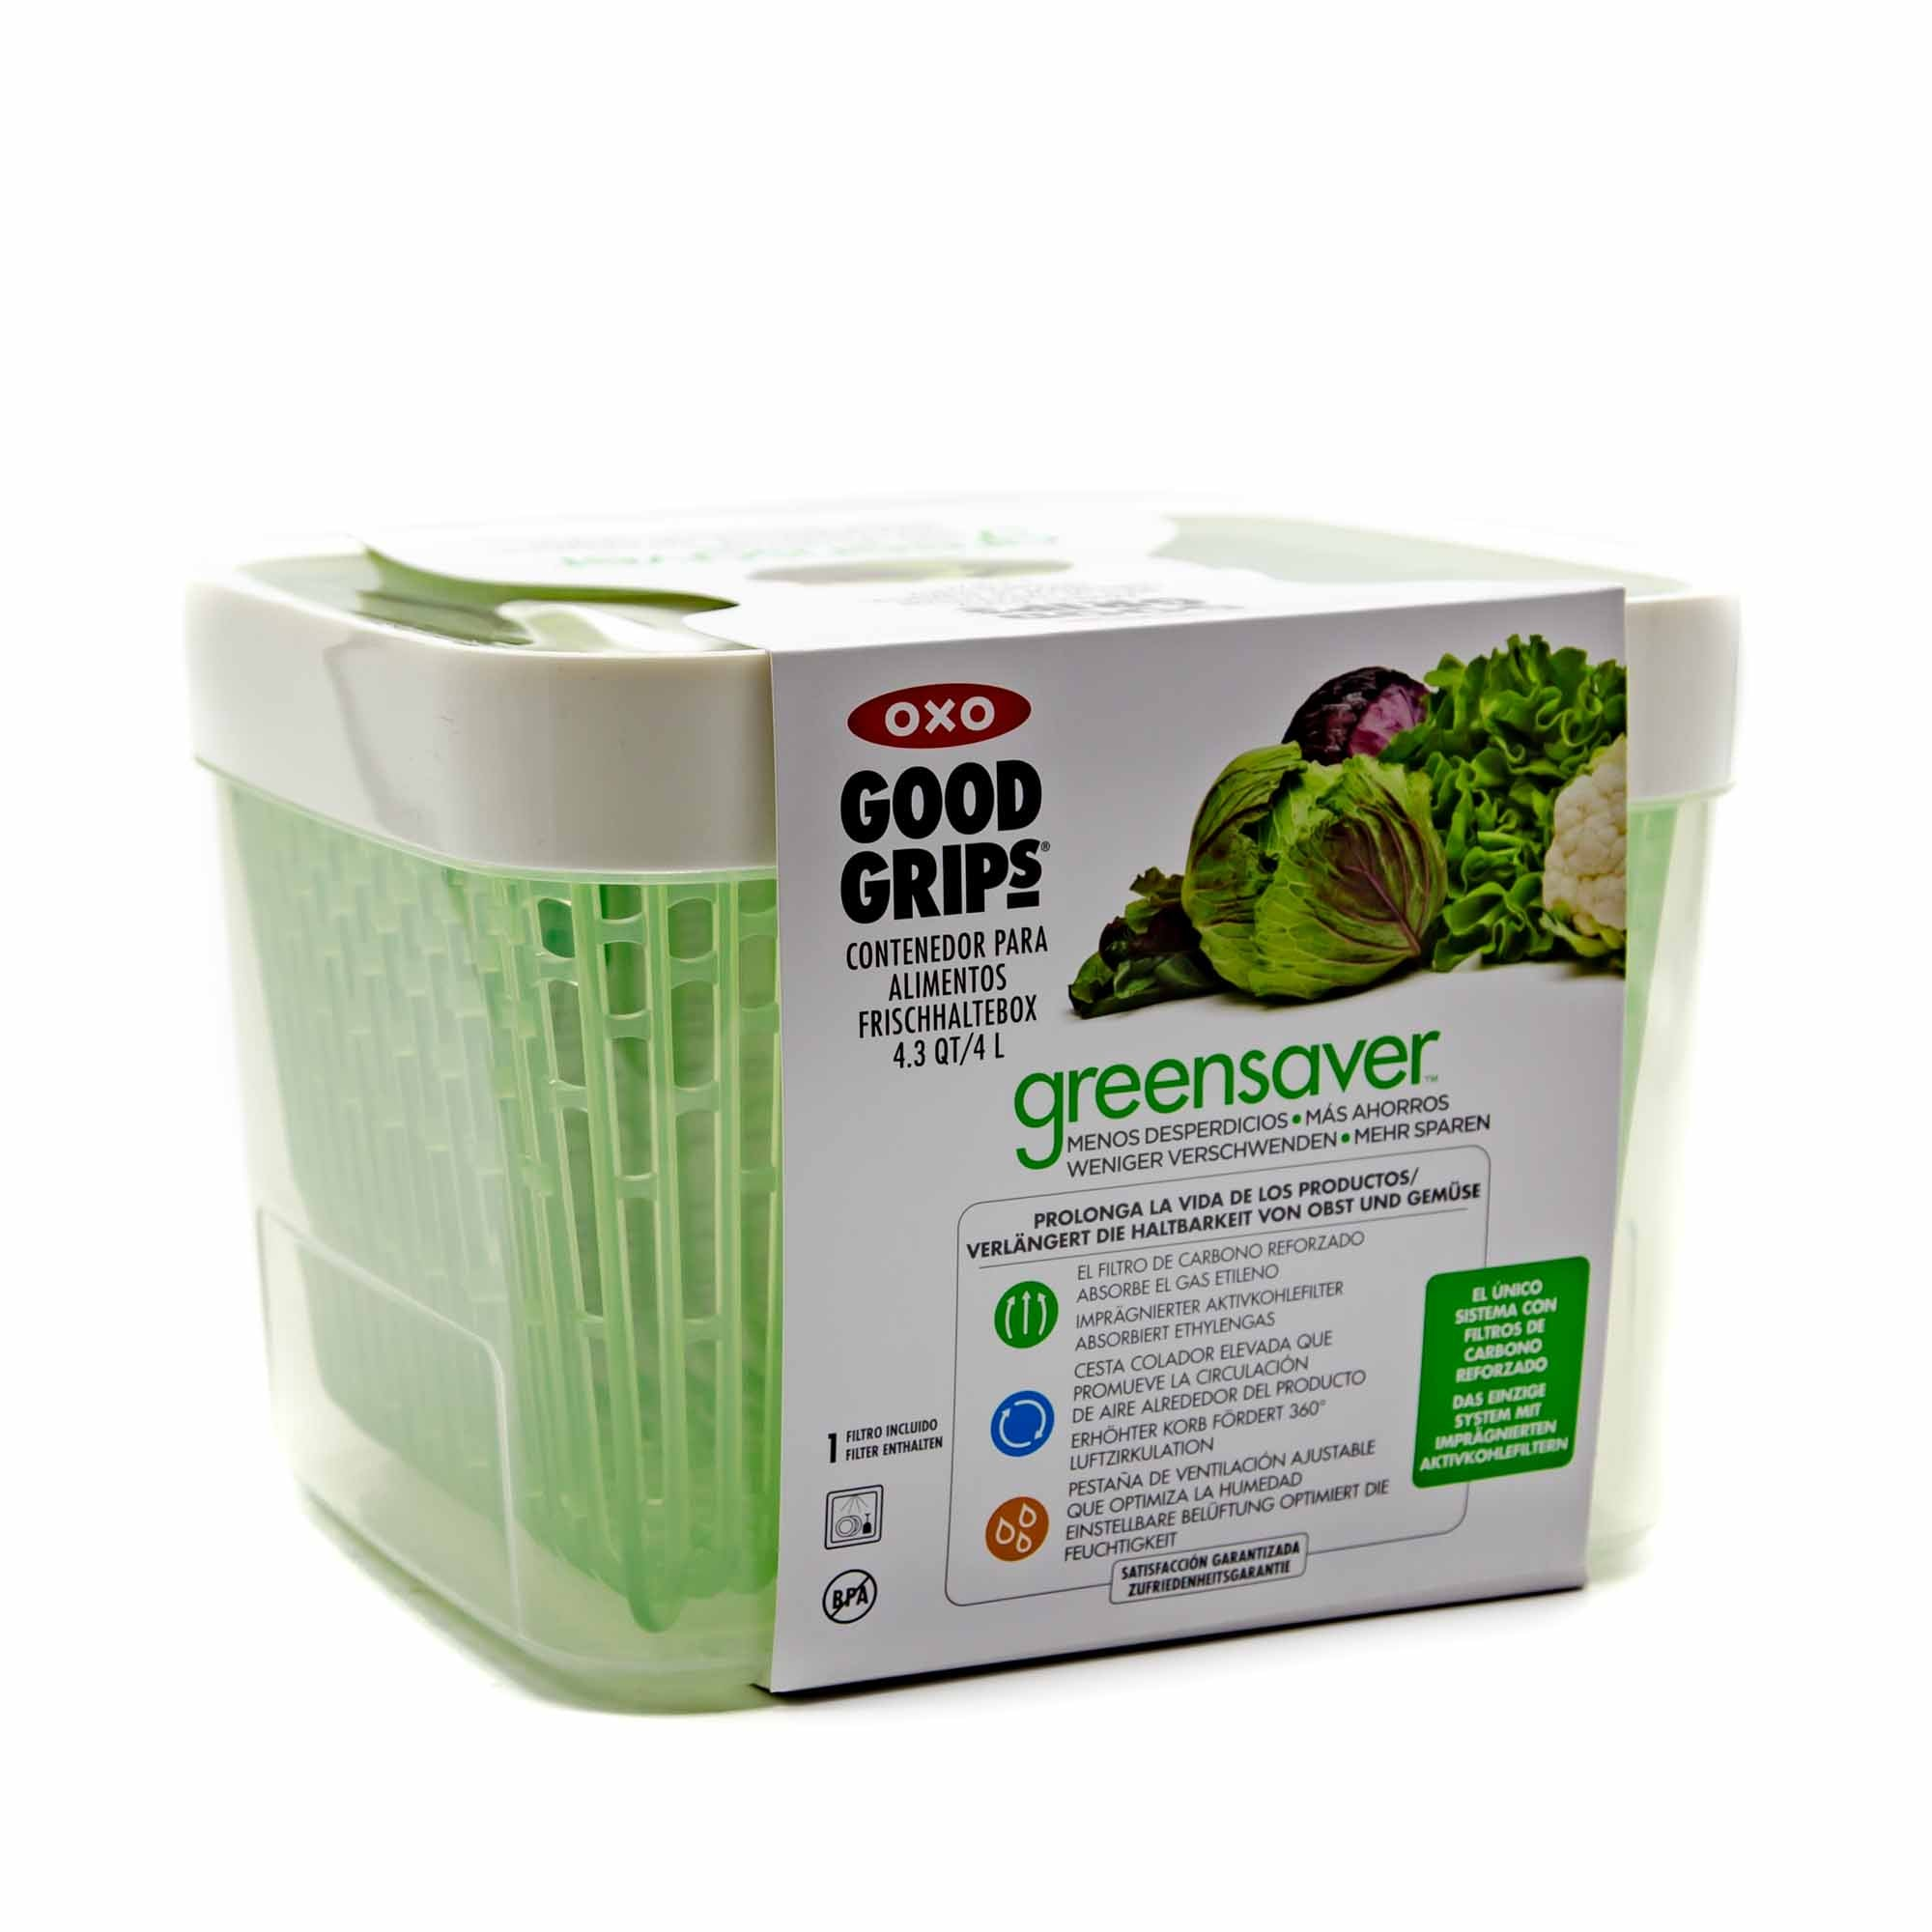 OXO Good Grips Greensaver 4.3QT - Mortise And Tenon